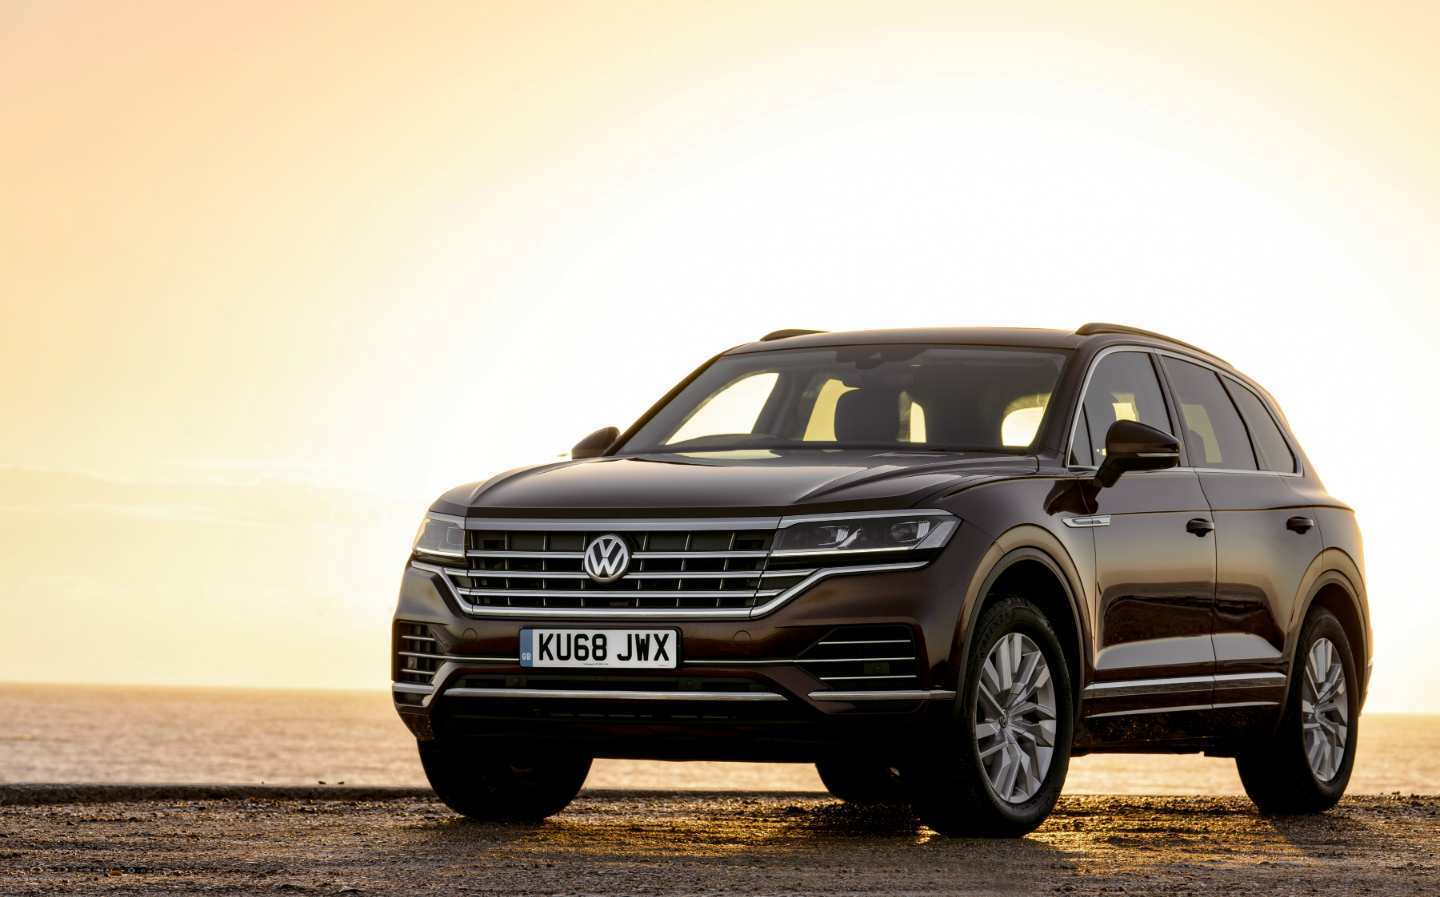 48 All New Volkswagen Touareg 2019 Off Road Specs Redesign and Concept by Volkswagen Touareg 2019 Off Road Specs